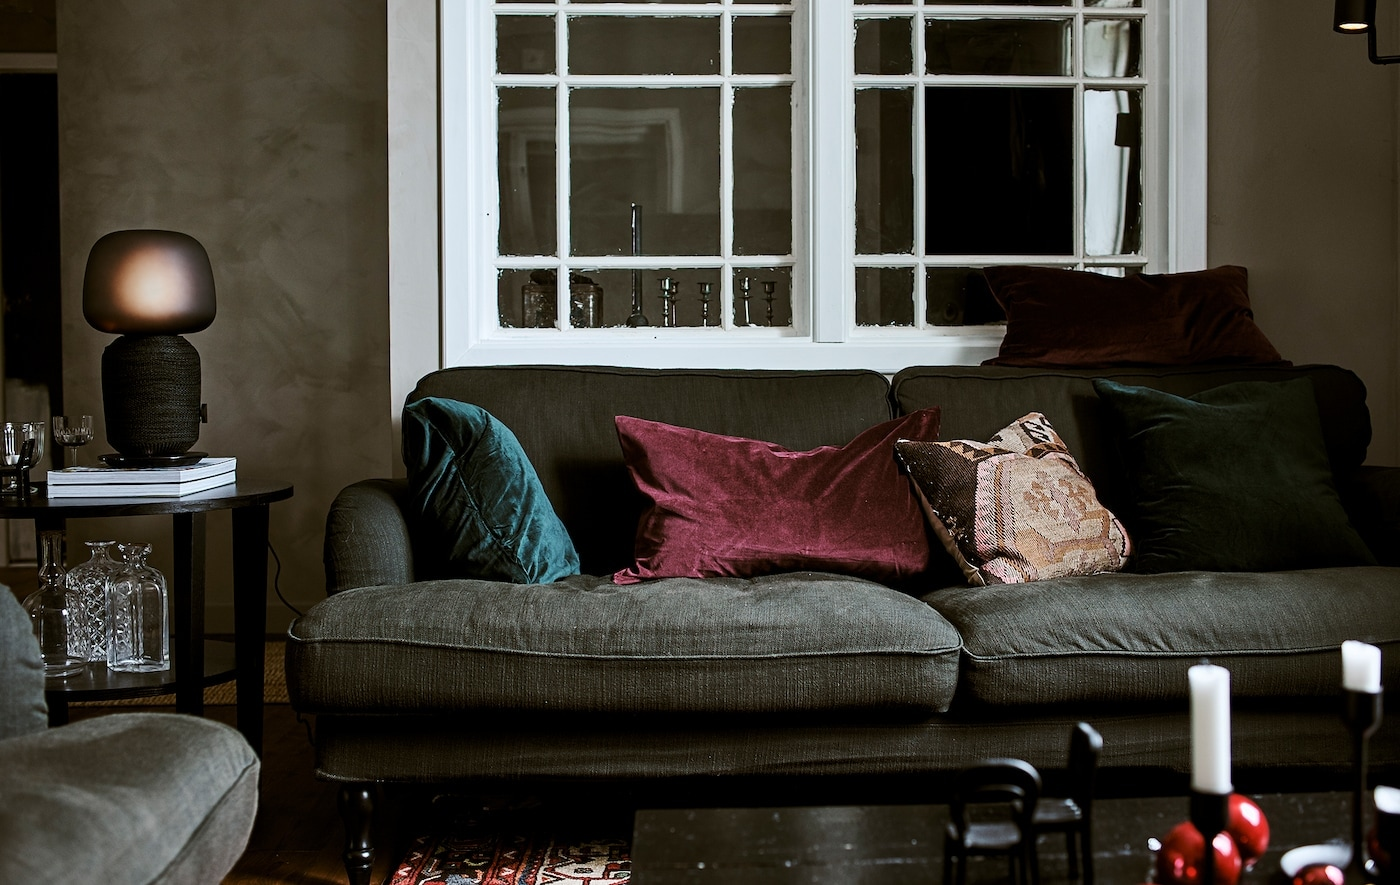 Green sofa with jewel-coloured cushions in a living room with interior window, coffee table with table lamp and Persian rug.